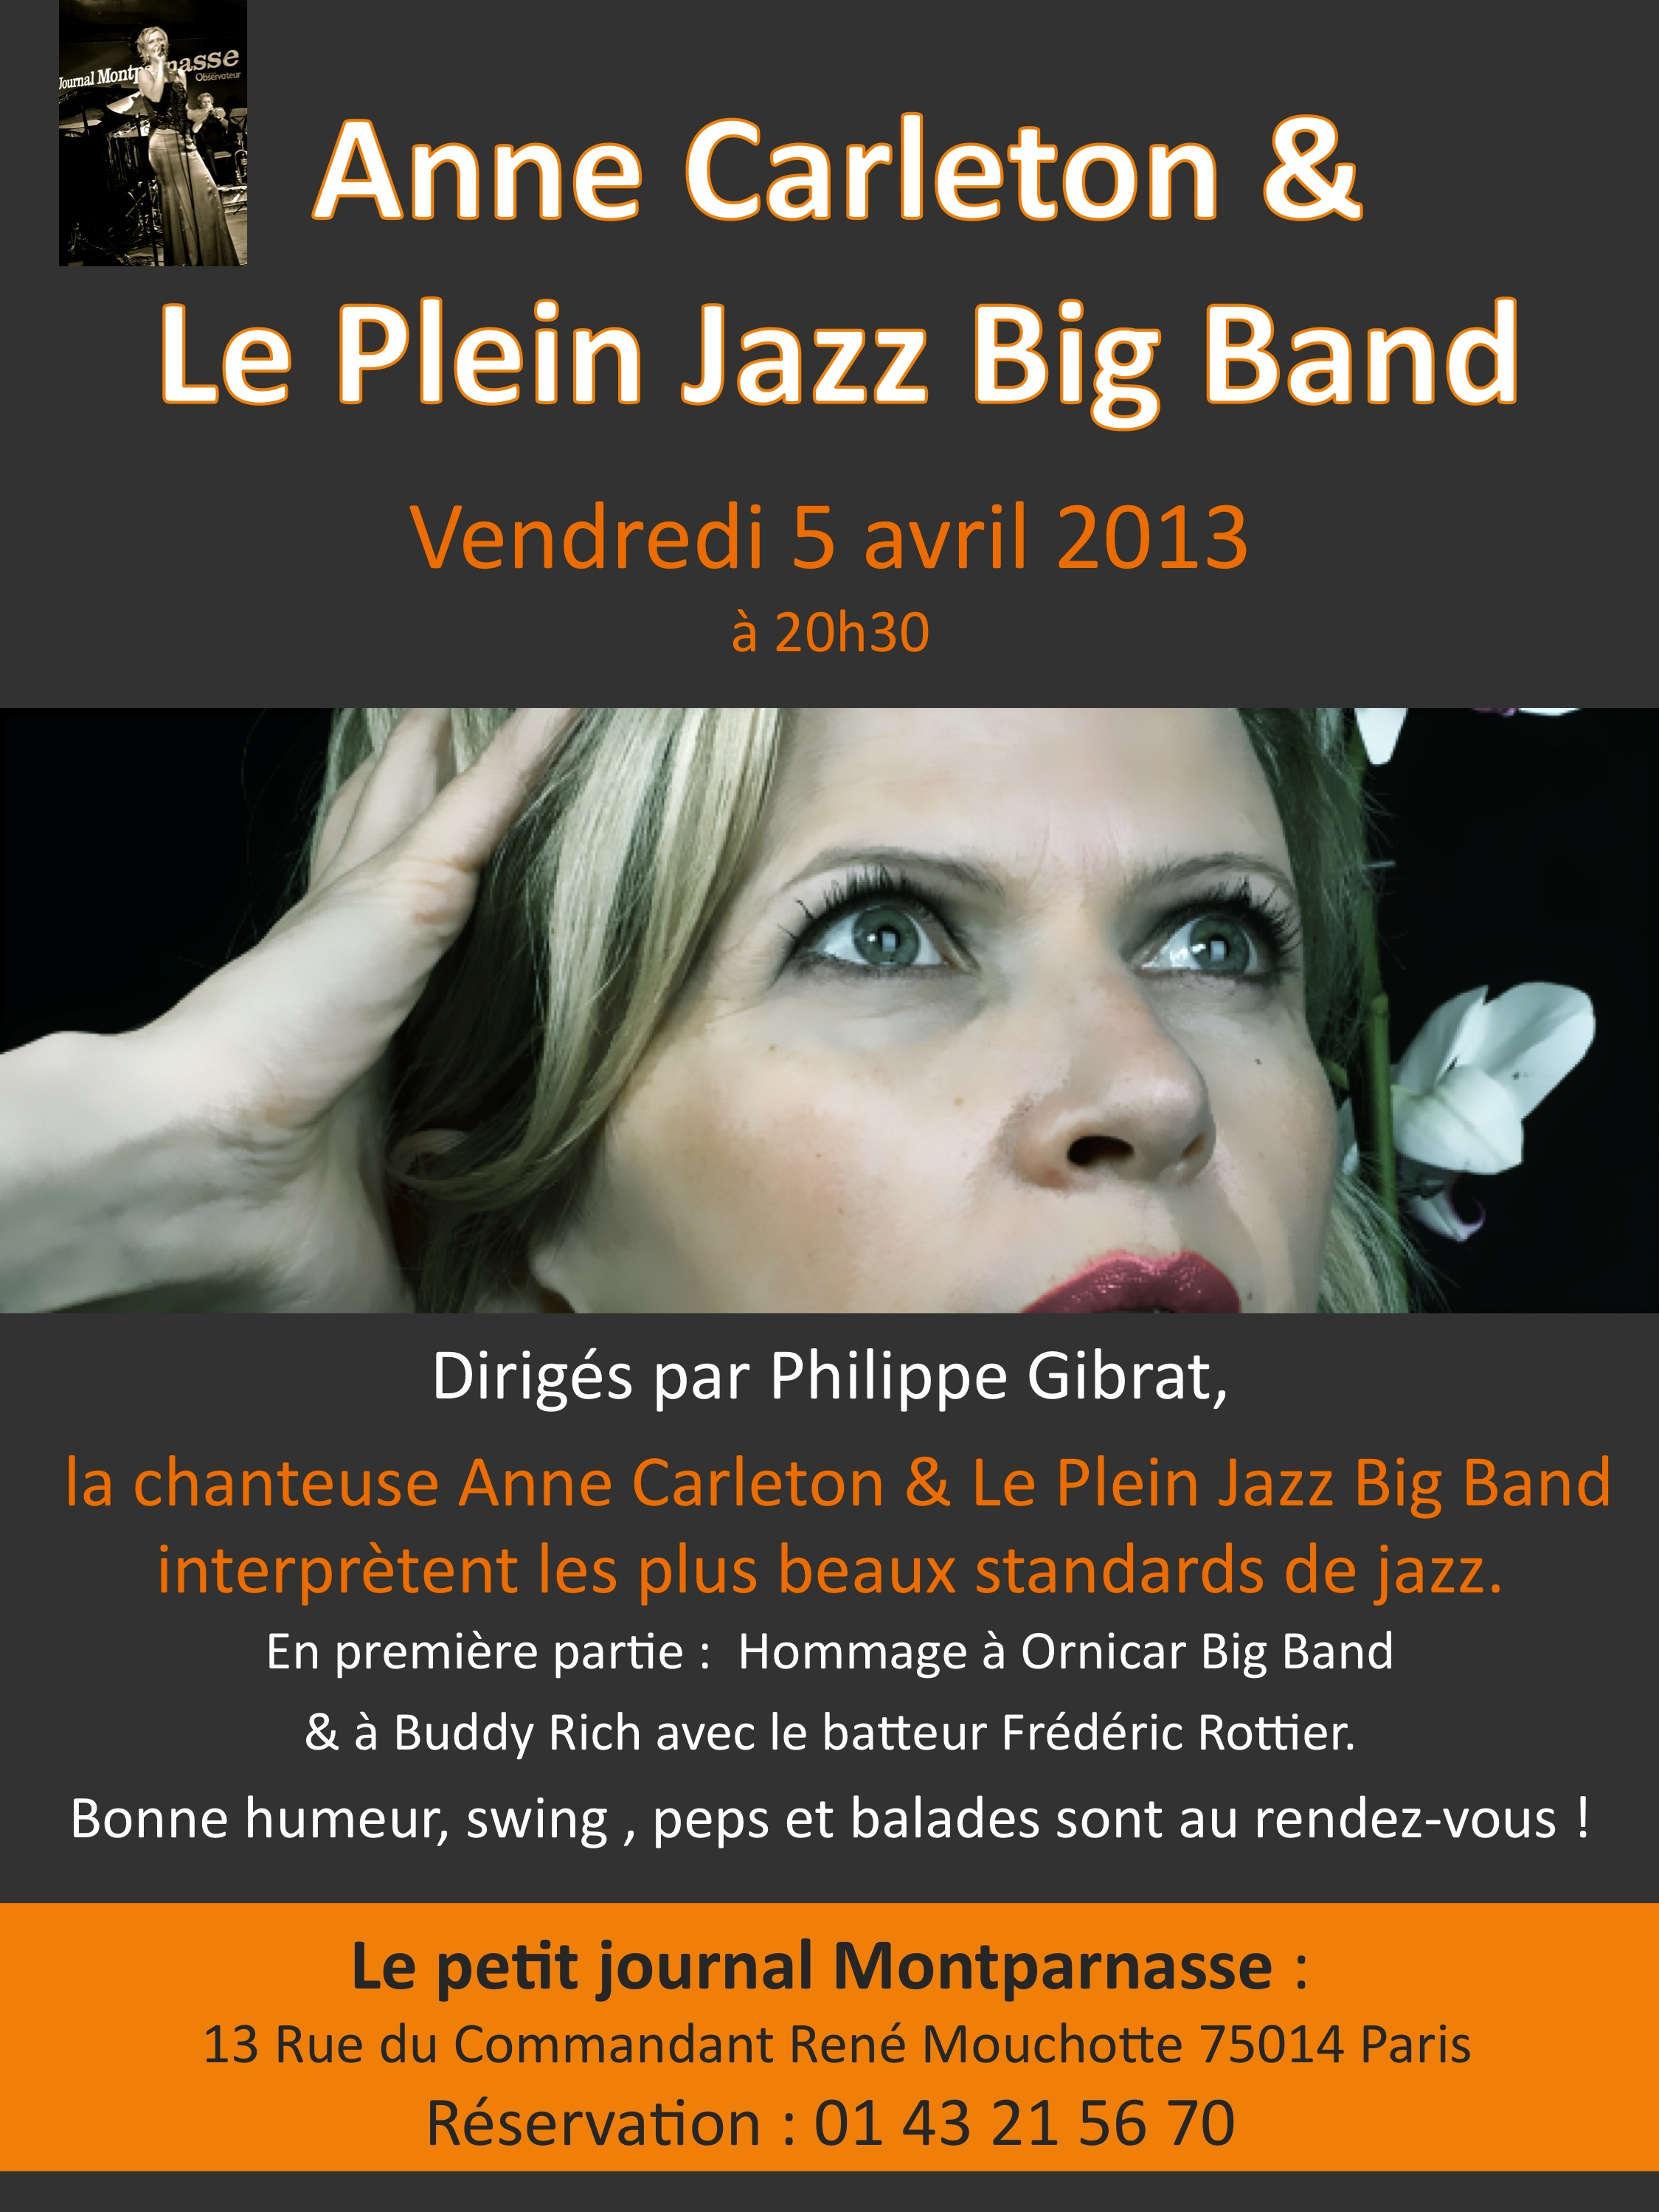 Anne Carleton en big band